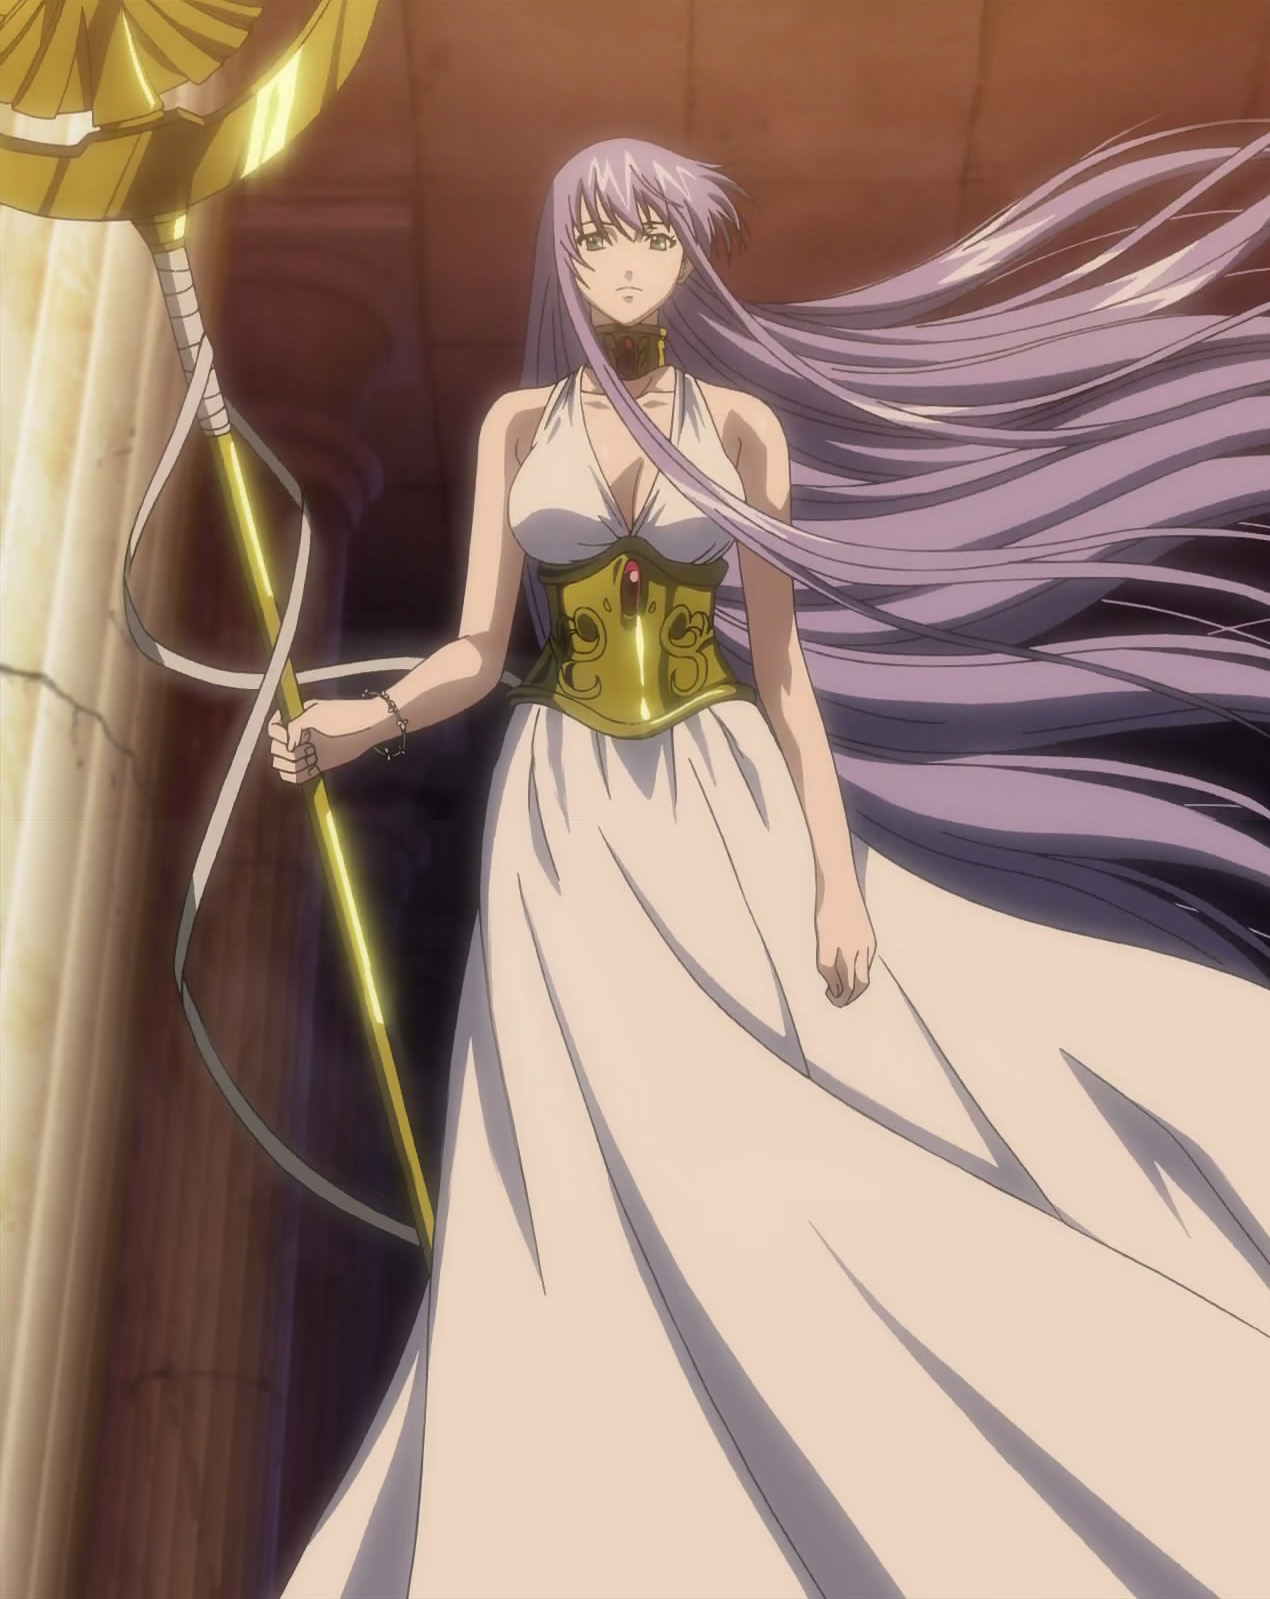 Saint Seiya Lost Canvas Image #957133 - Zerochan Anime Image